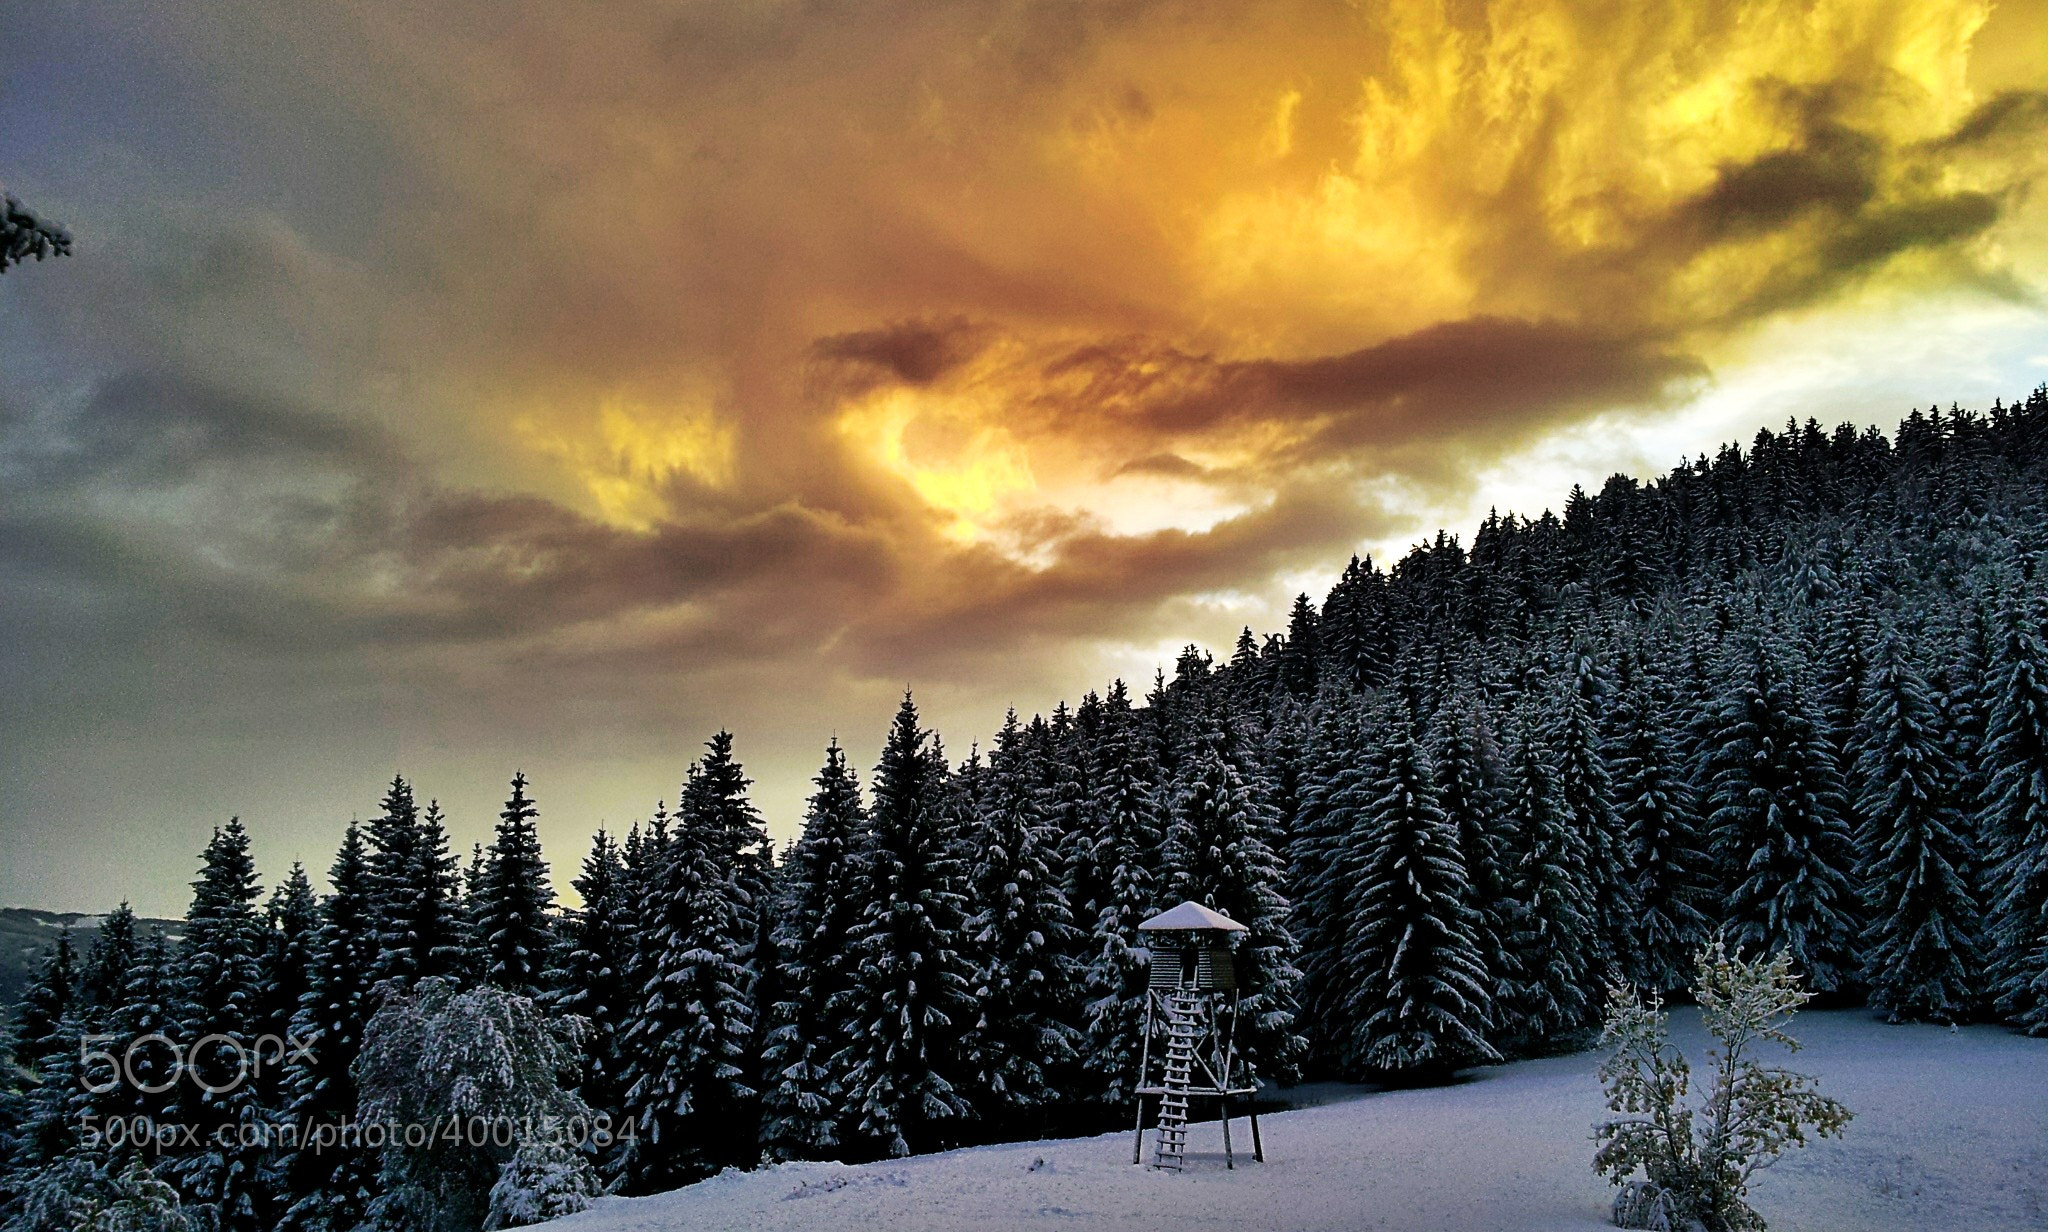 Photograph Magical early winter by Filip Eremita on 500px